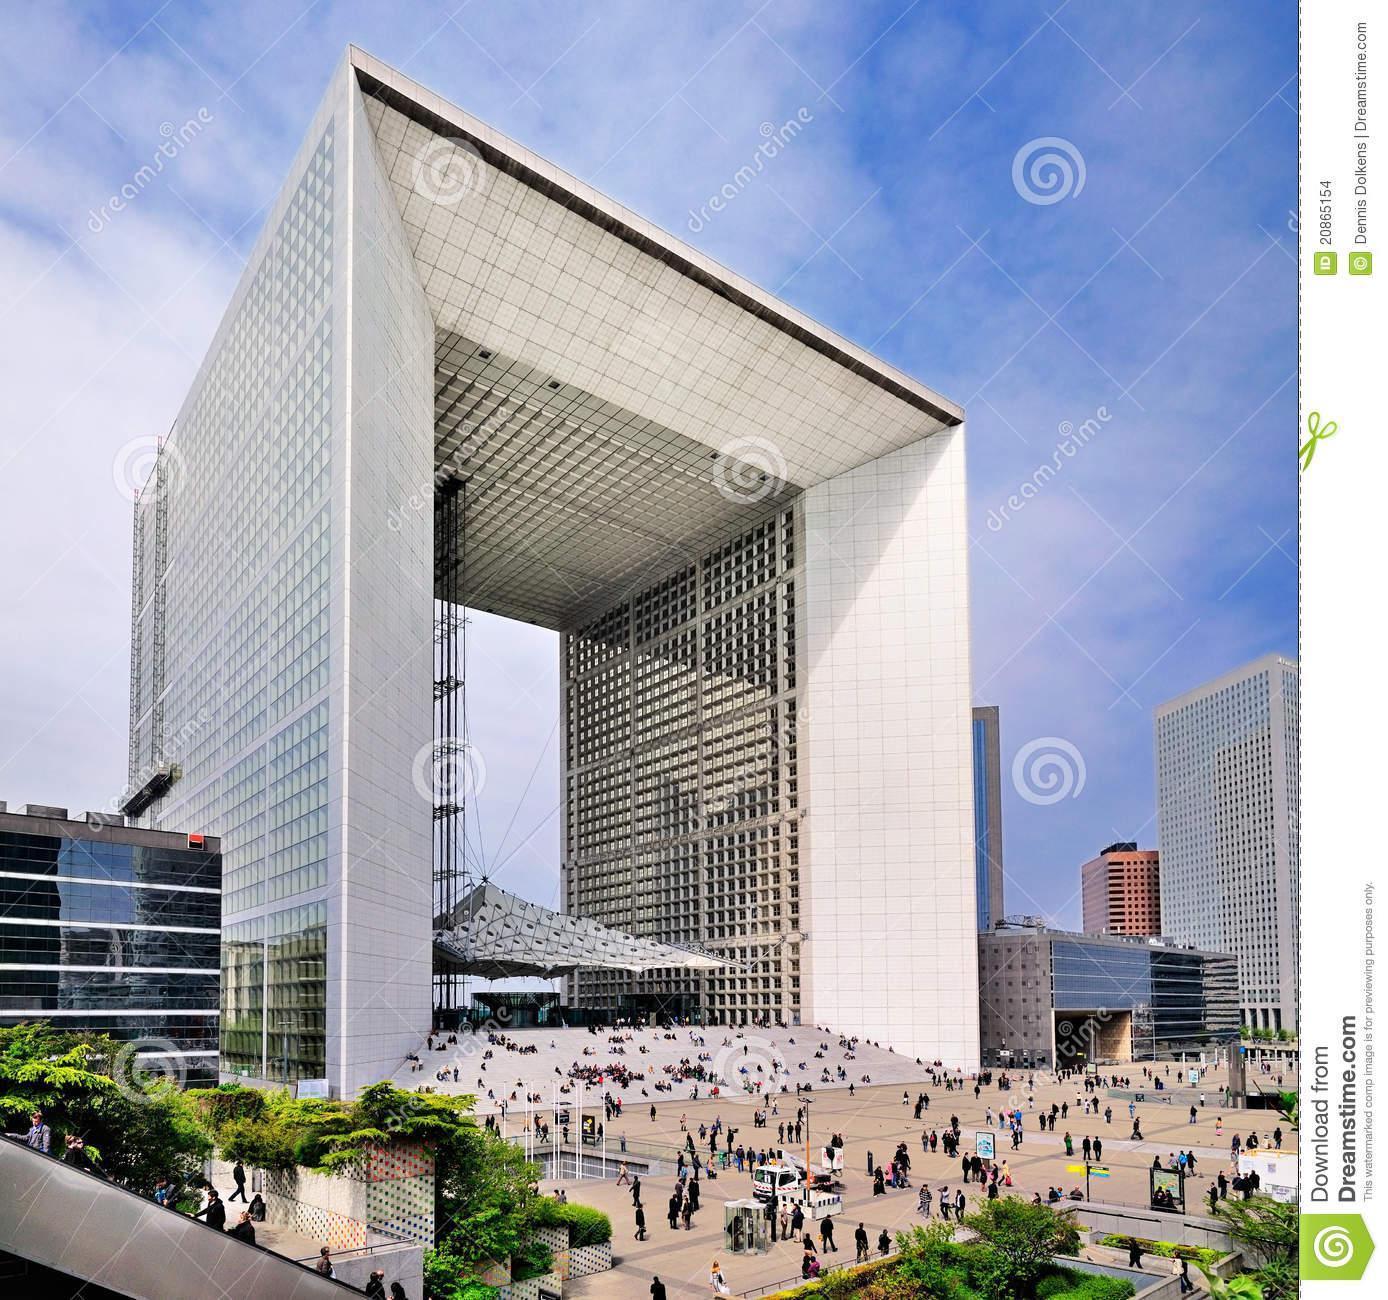 Amazing Grande Arche Pictures & Backgrounds